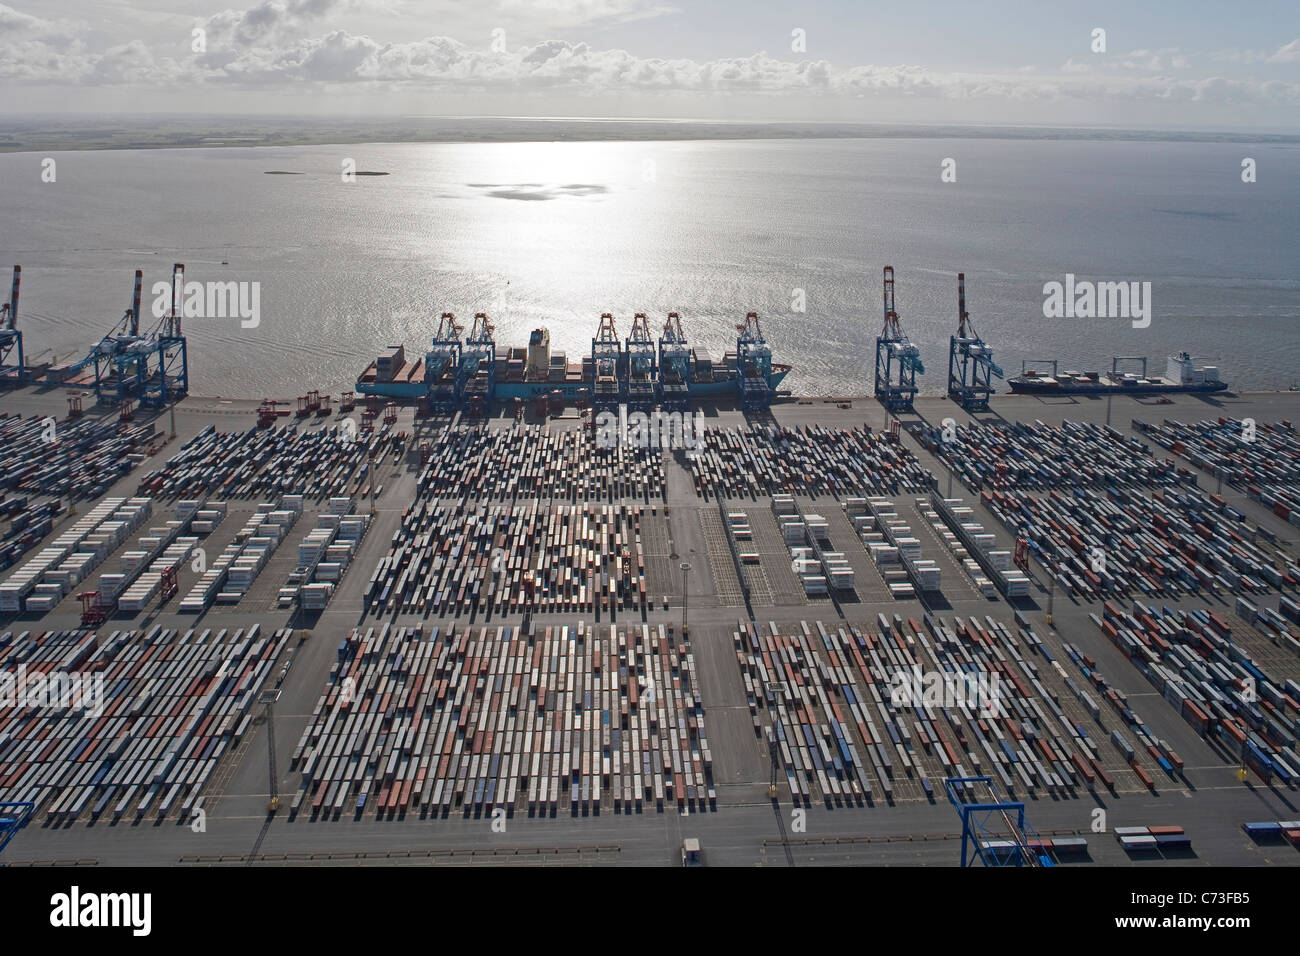 Aerial view of the container port, Containers and loading cranes in the backlight, Bremerhaven, northern Germany - Stock Image